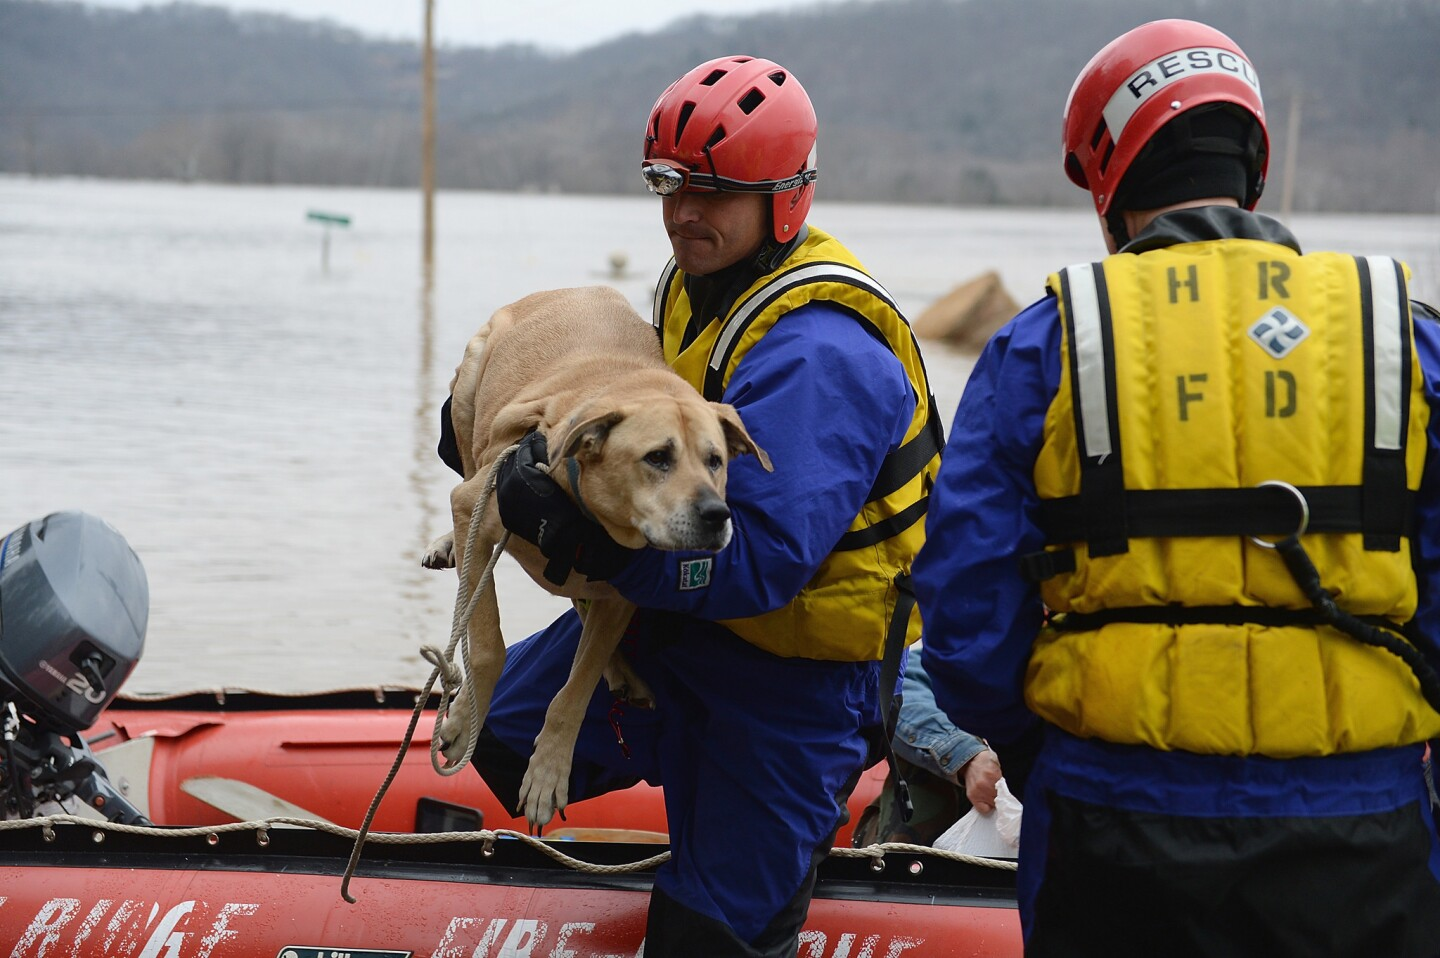 The High Ridge Fire Department rescues stranded residents and pets along the Meremac River in Eureka, Mo.